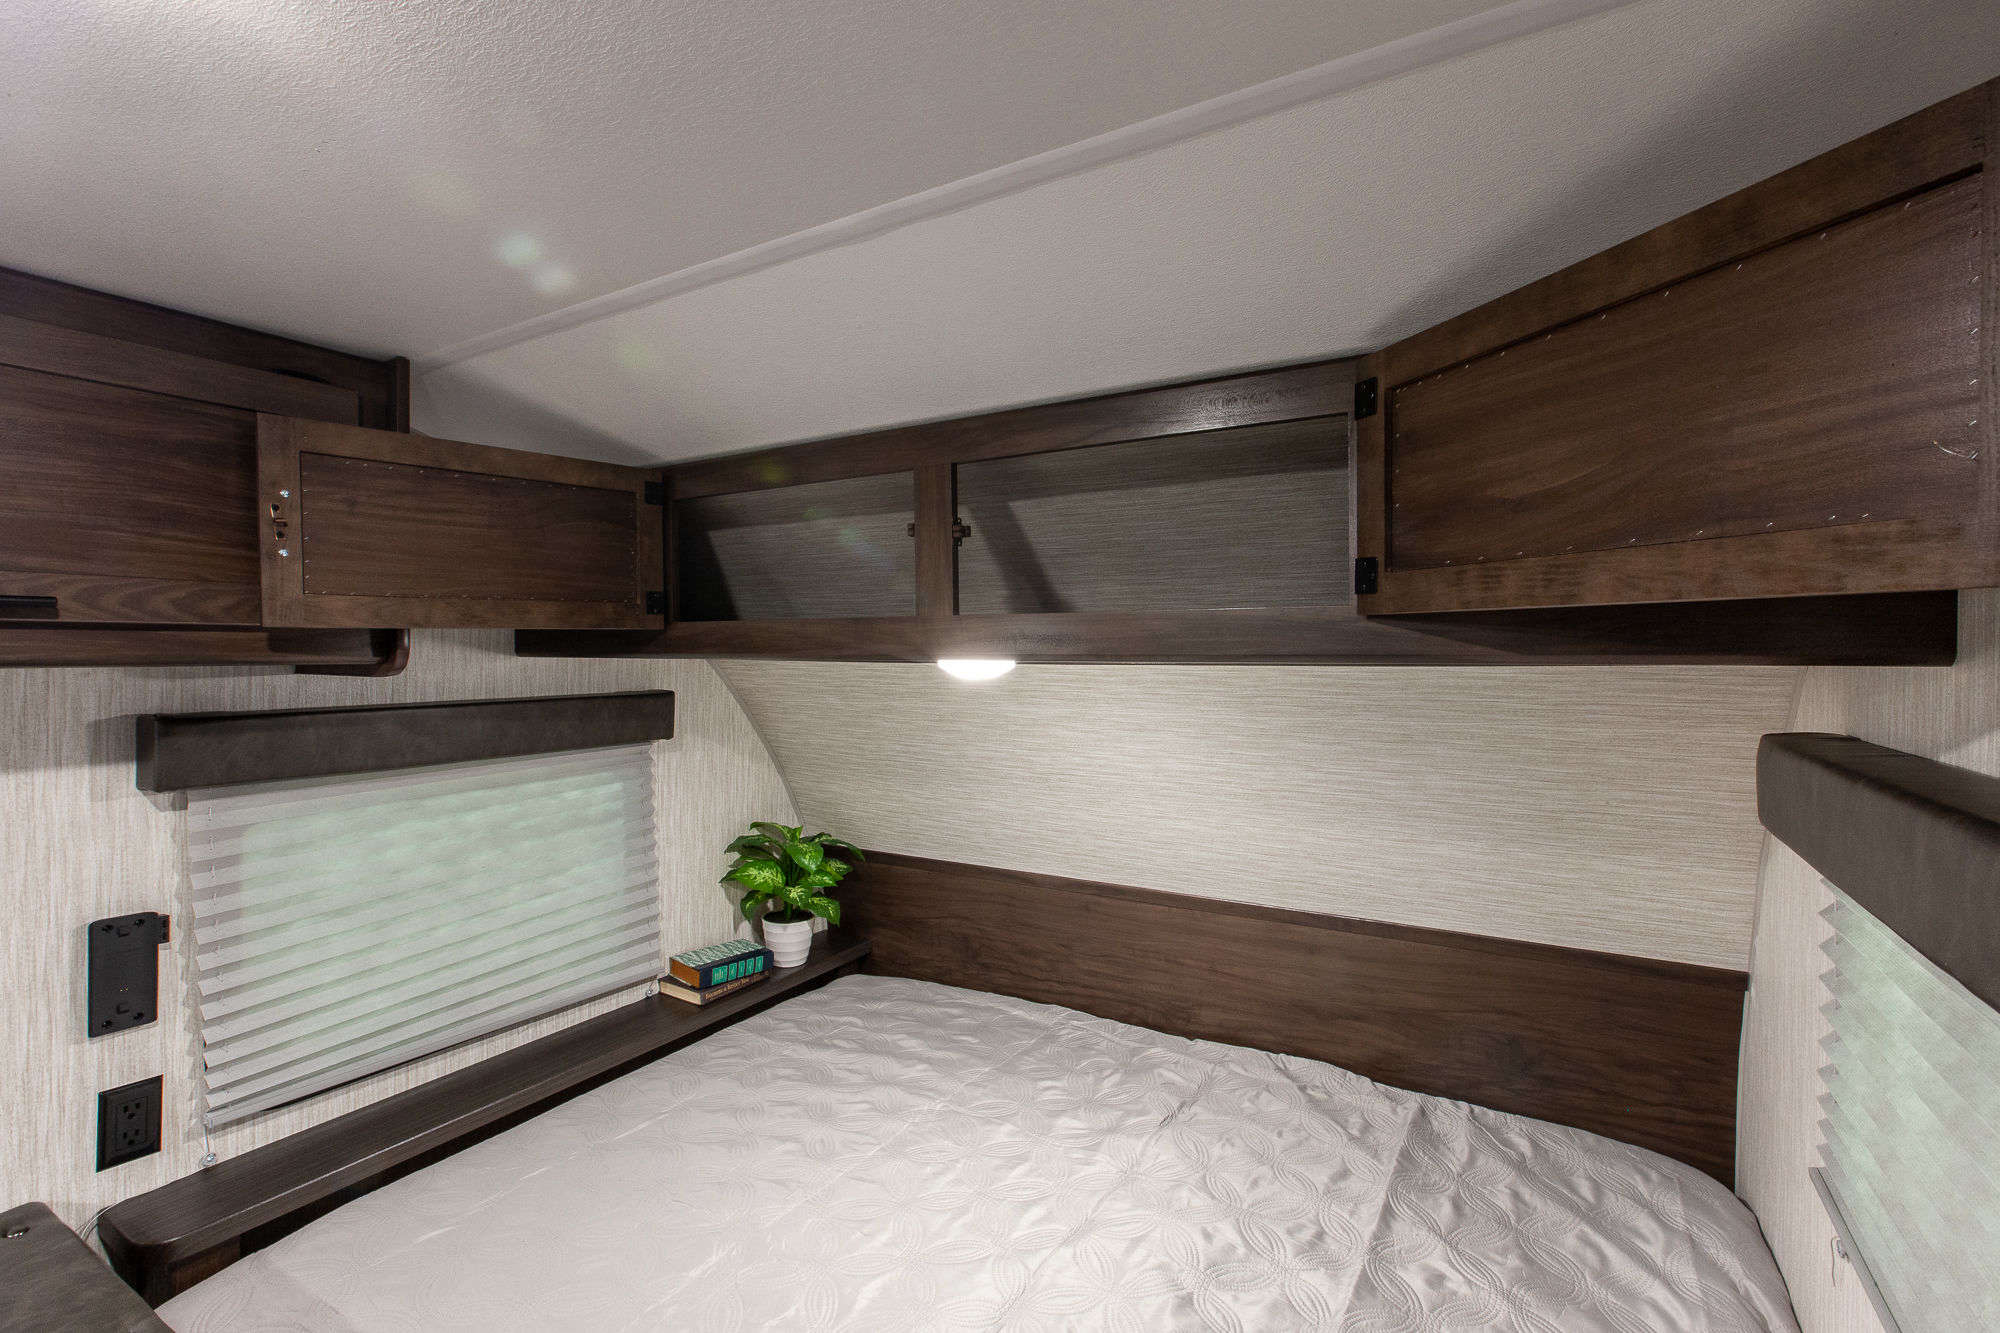 2021 Forest River Cherokee Wolf Pup 16BHS Bunkhouse Travel Trailer Interior Image